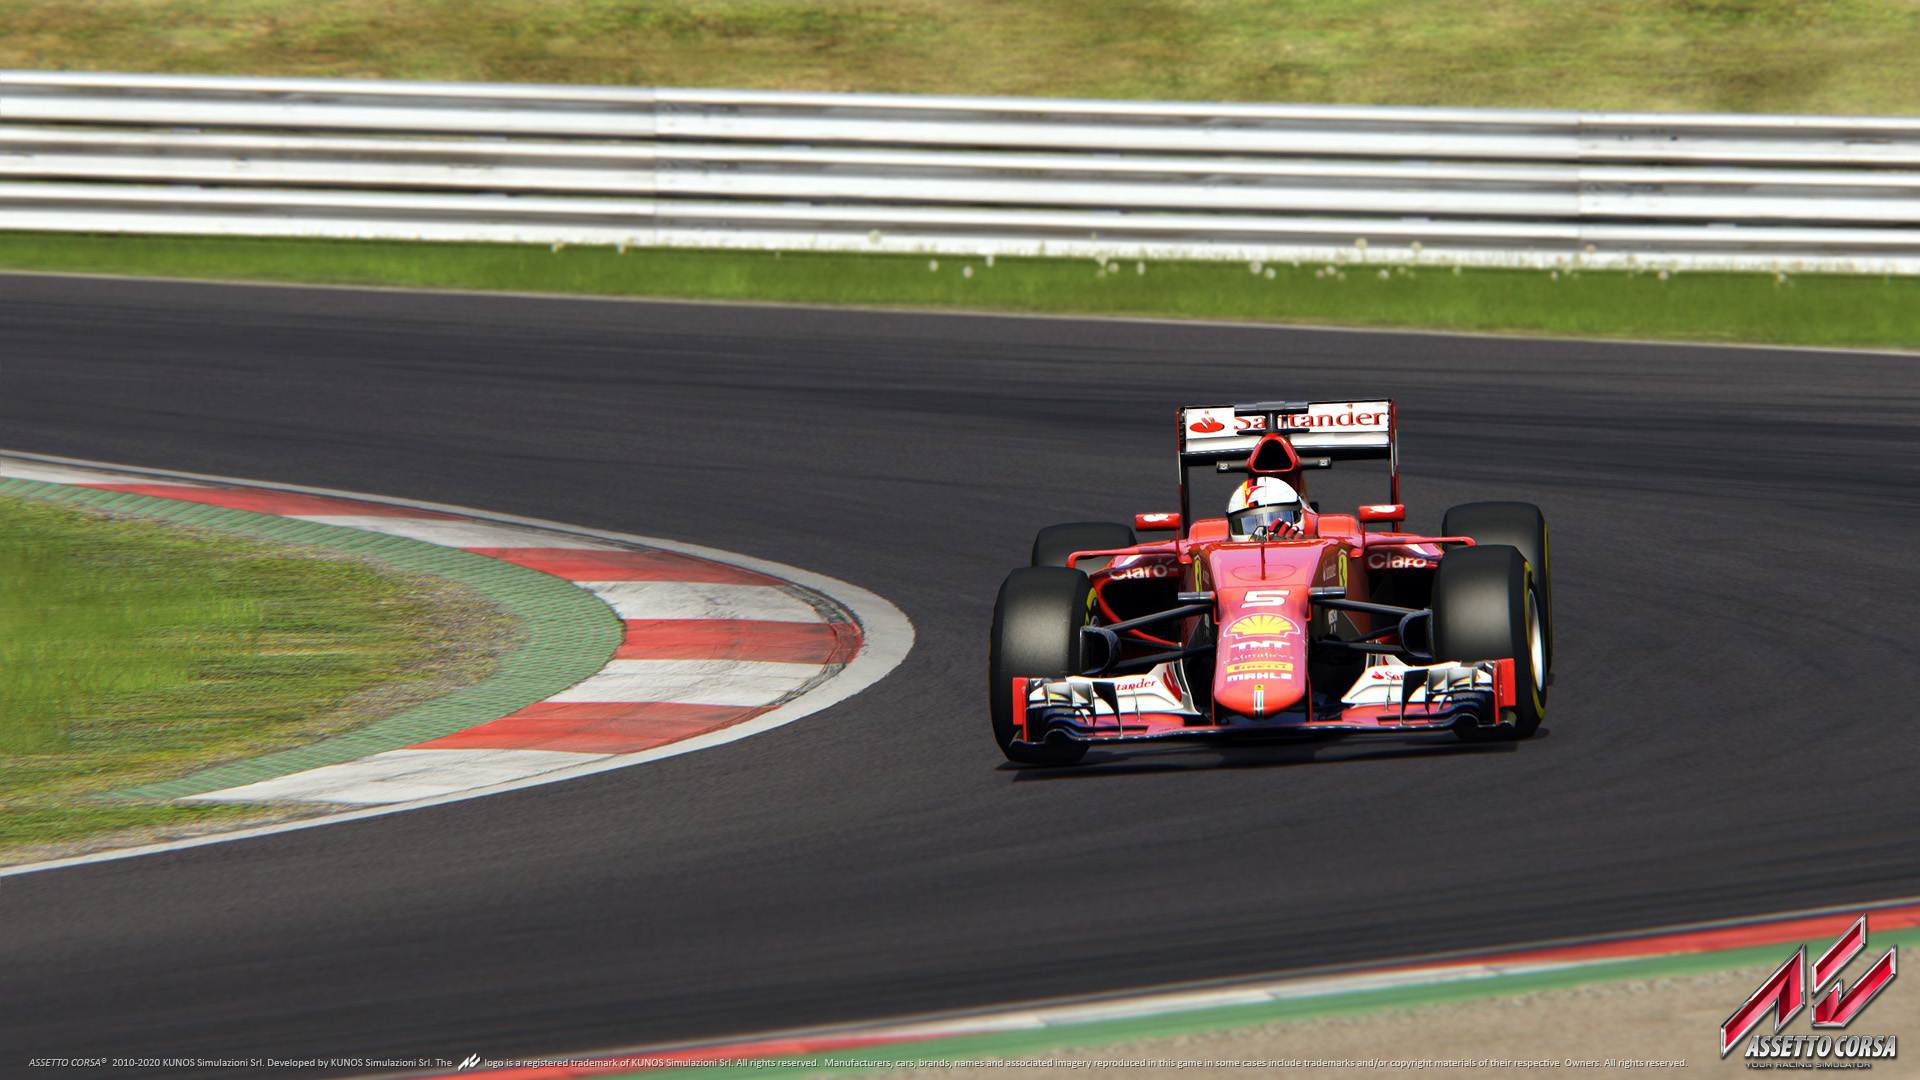 Assetto corsa ps4 screenshot